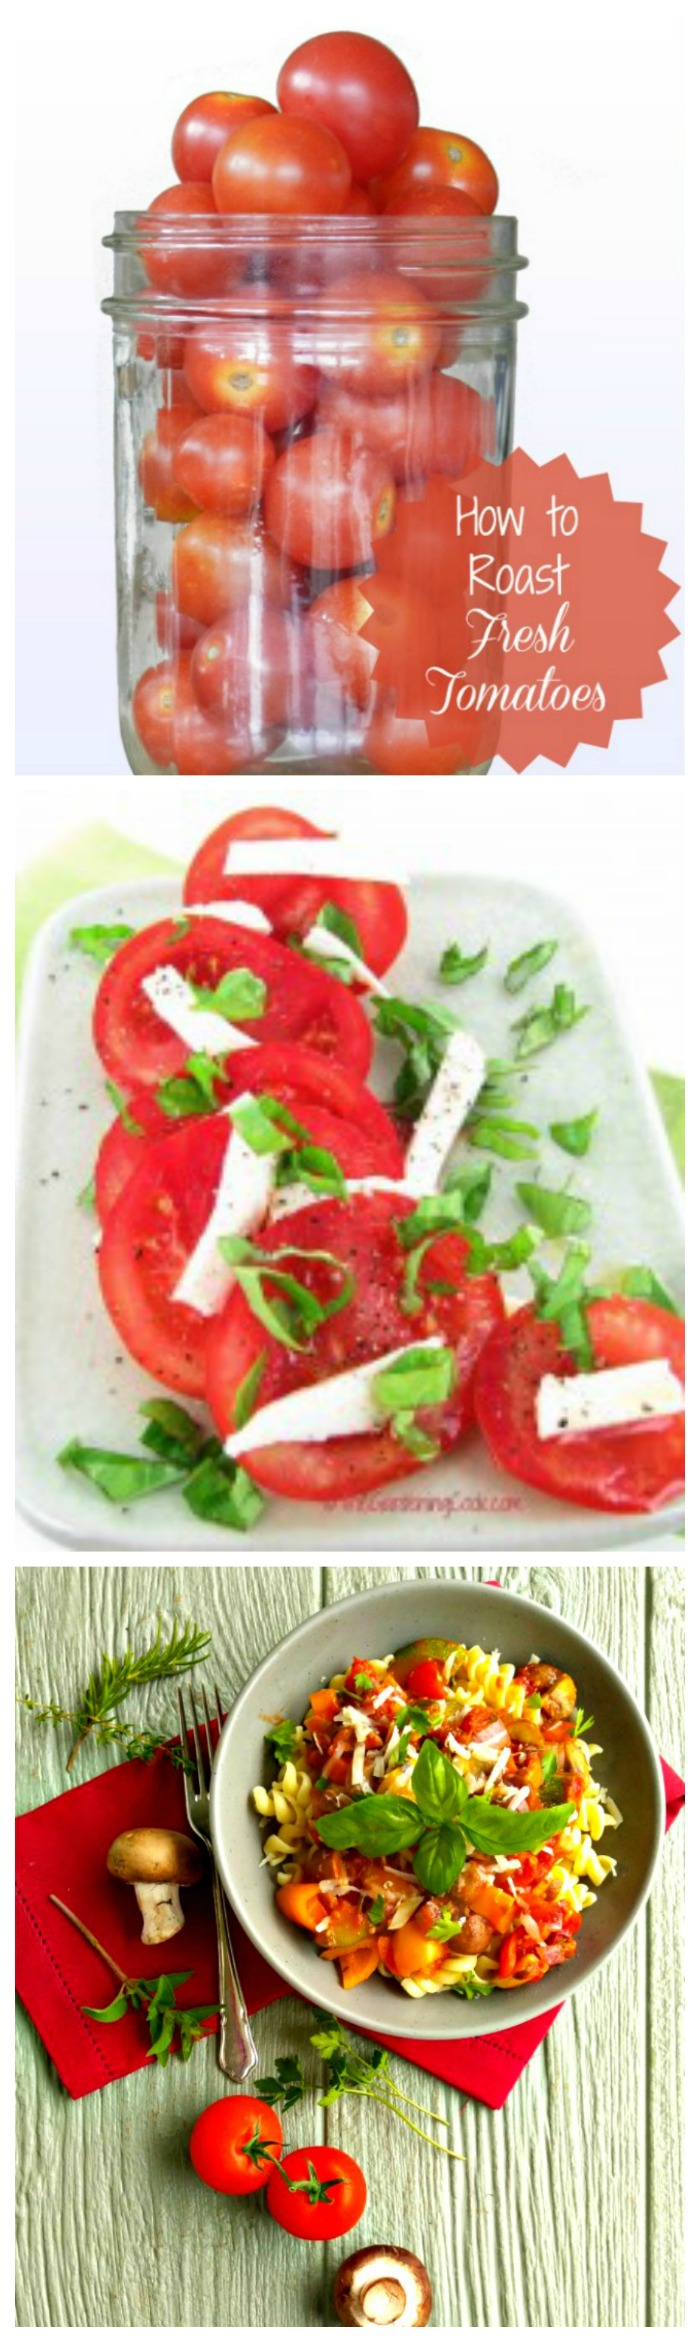 Recipes for roasting and using fresh tomatoes